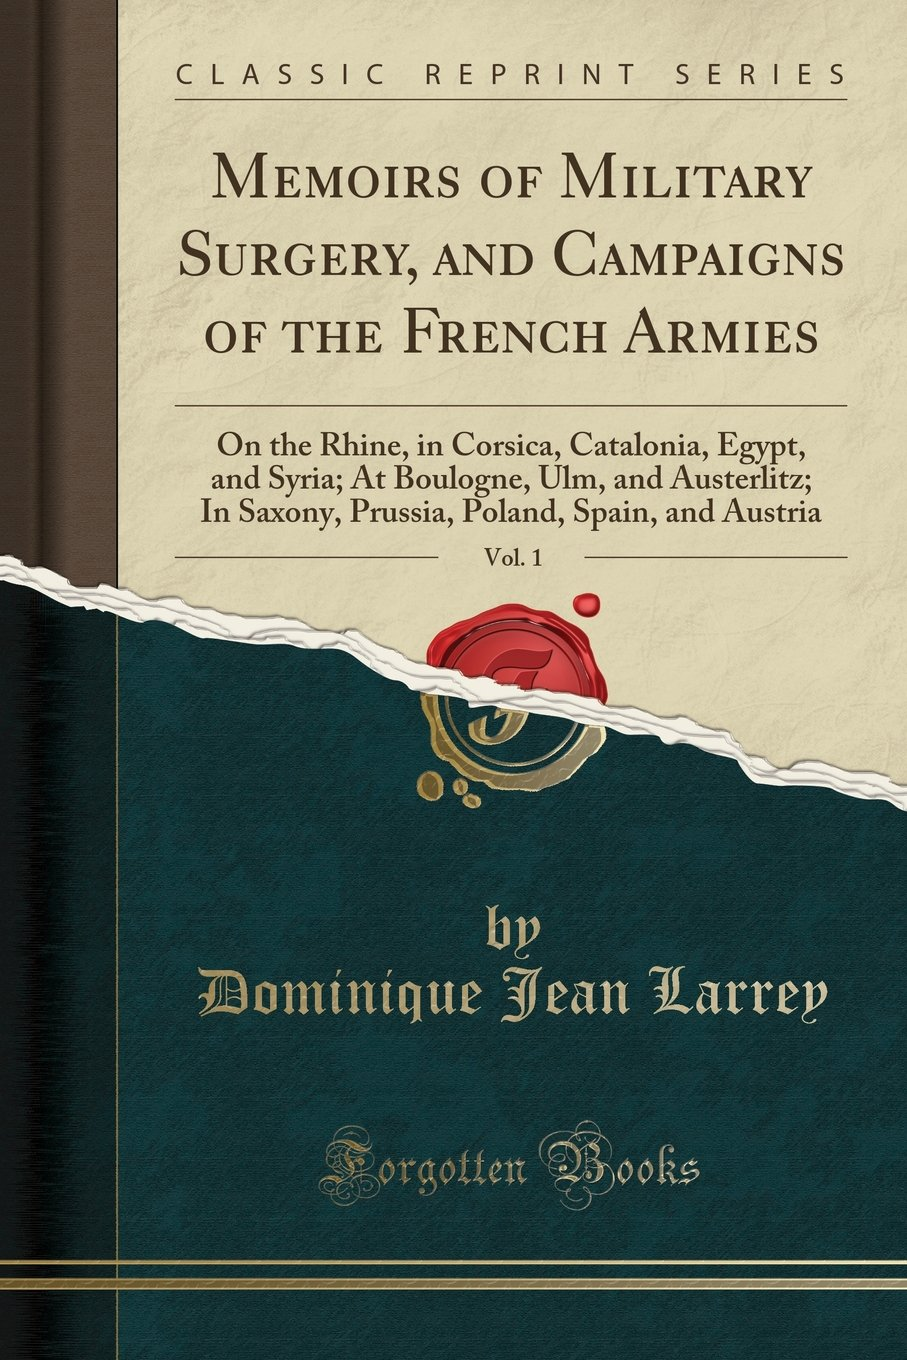 Memoirs of Military Surgery, and Campaigns of the French Armies, Vol. 1: On the Rhine, in Corsica, Catalonia, Egypt, and Syria; At Boulogne, Ulm, and Poland, Spain, and Austria (Classic Reprint)